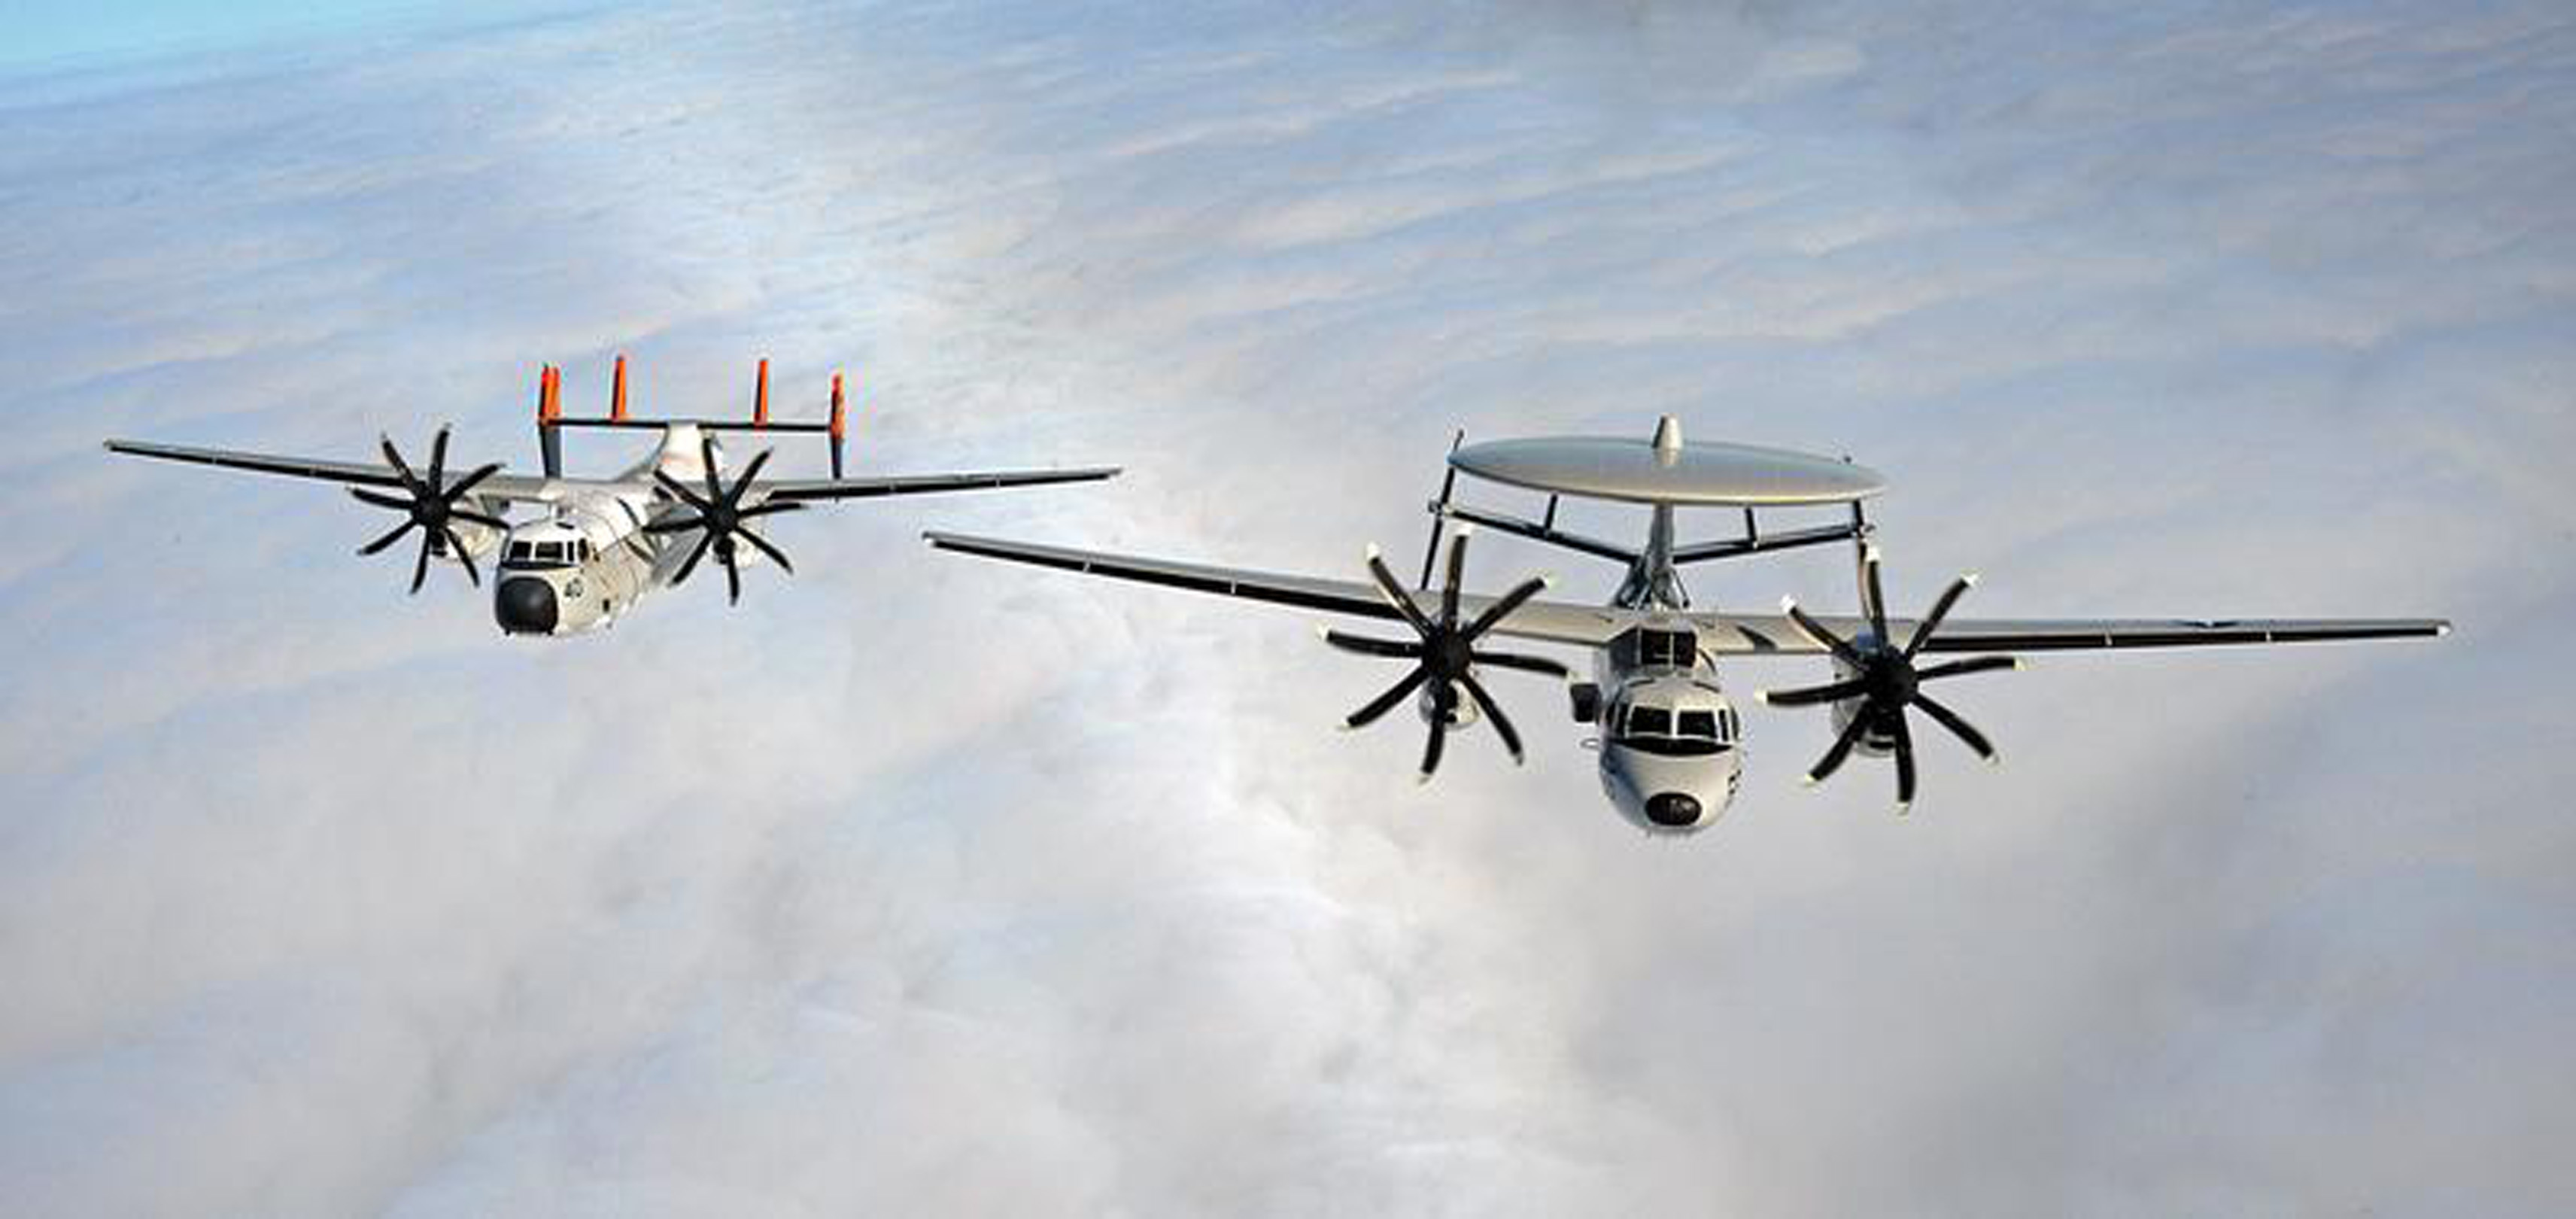 Shown left to right are a C-2A Greyhound and an E-2C Hawkeye.